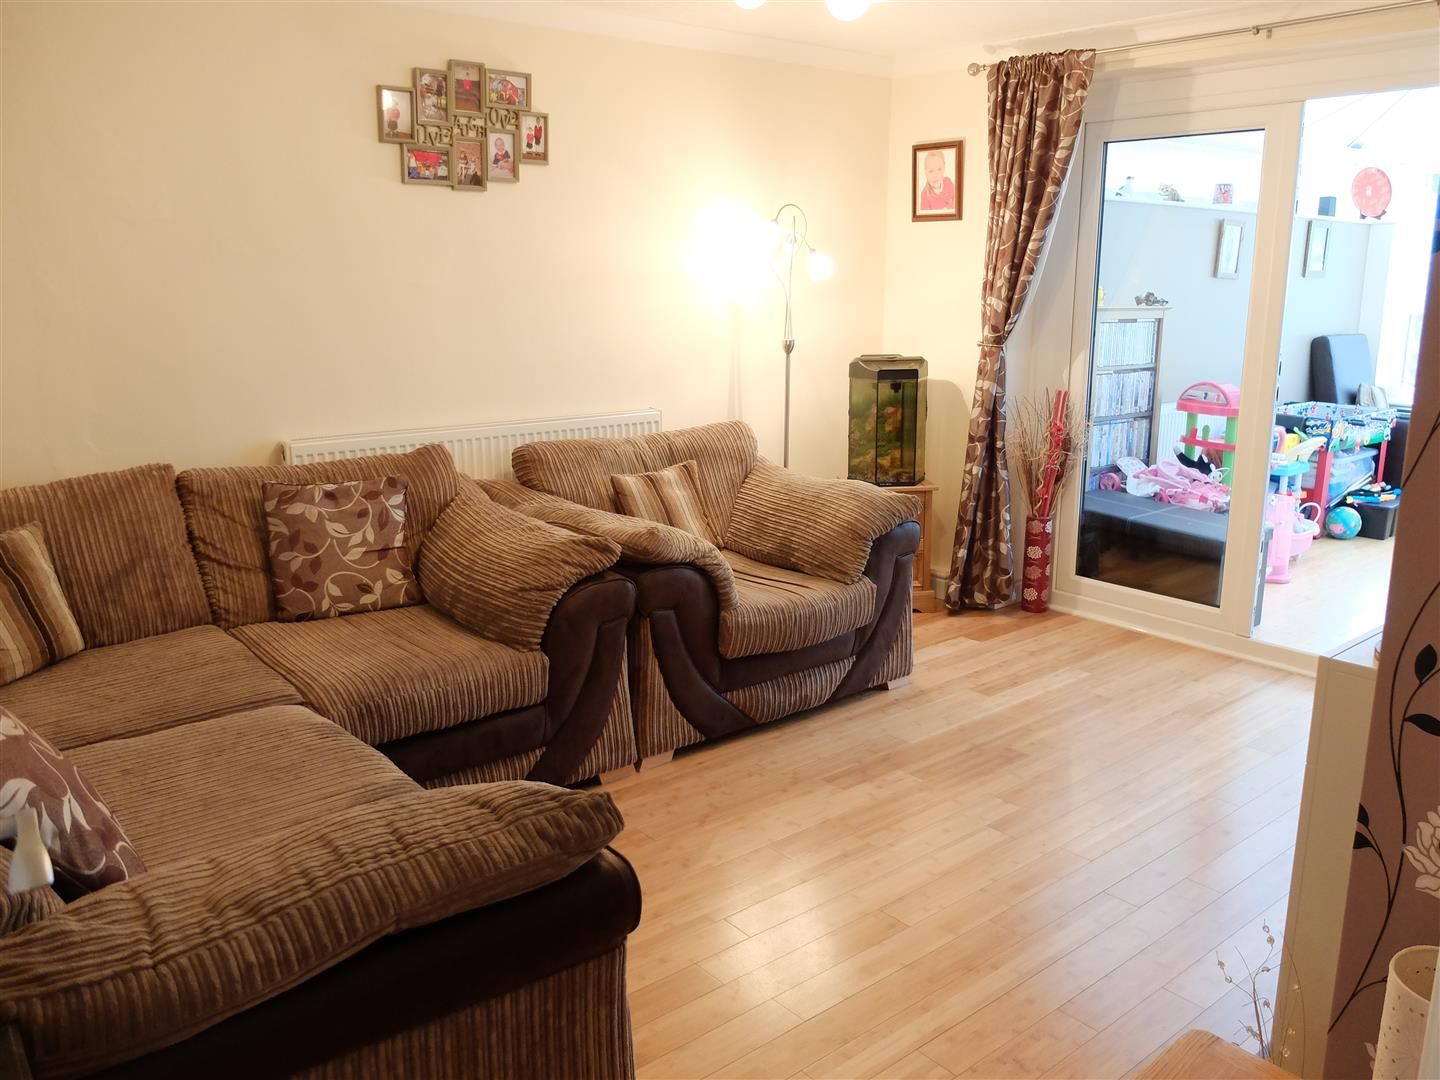 3 Bedrooms House - Terraced For Sale 132 Newlaithes Avenue Carlisle